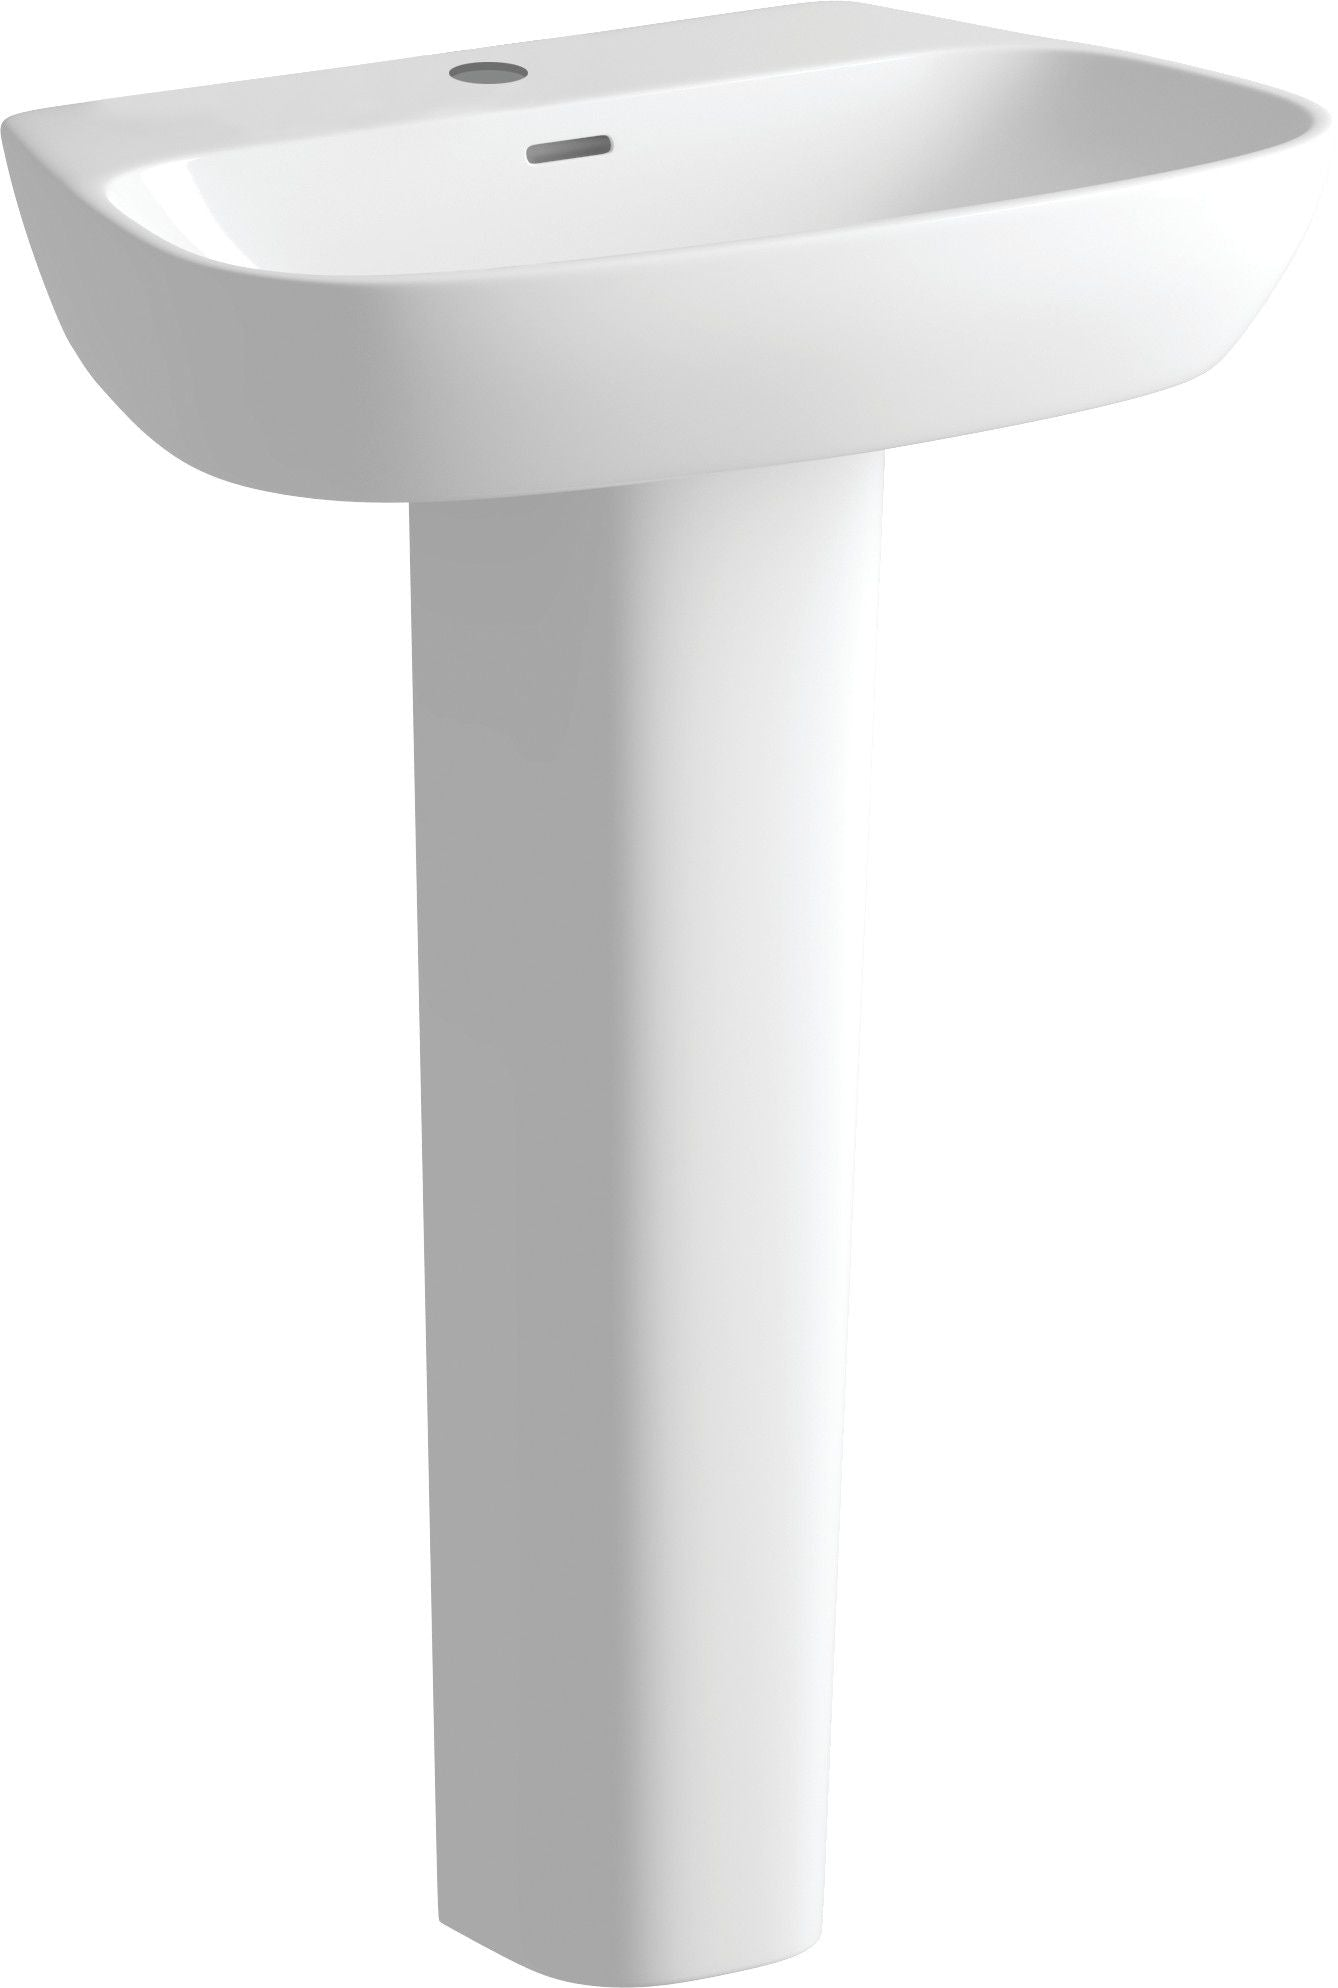 Tilia Basin With Pedestal (Click For Options)